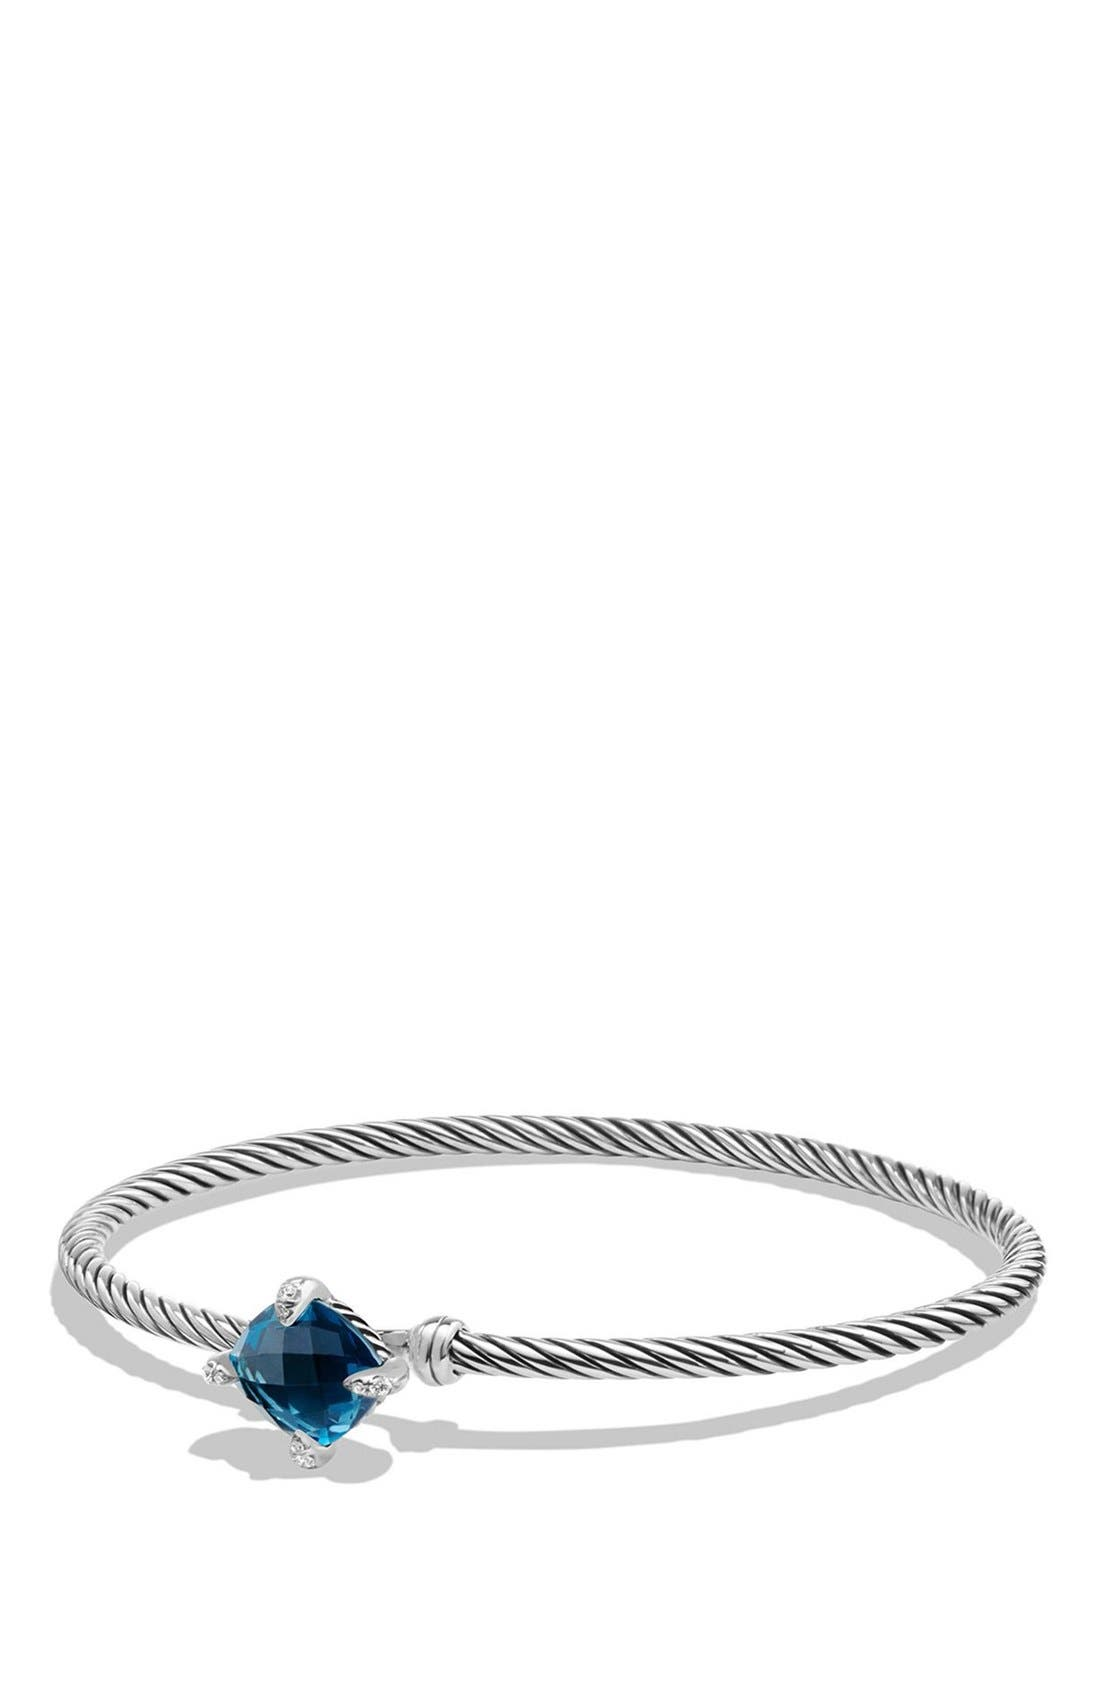 Alternate Image 1 Selected - David Yurman 'Châtelaine' Bracelet with Diamonds